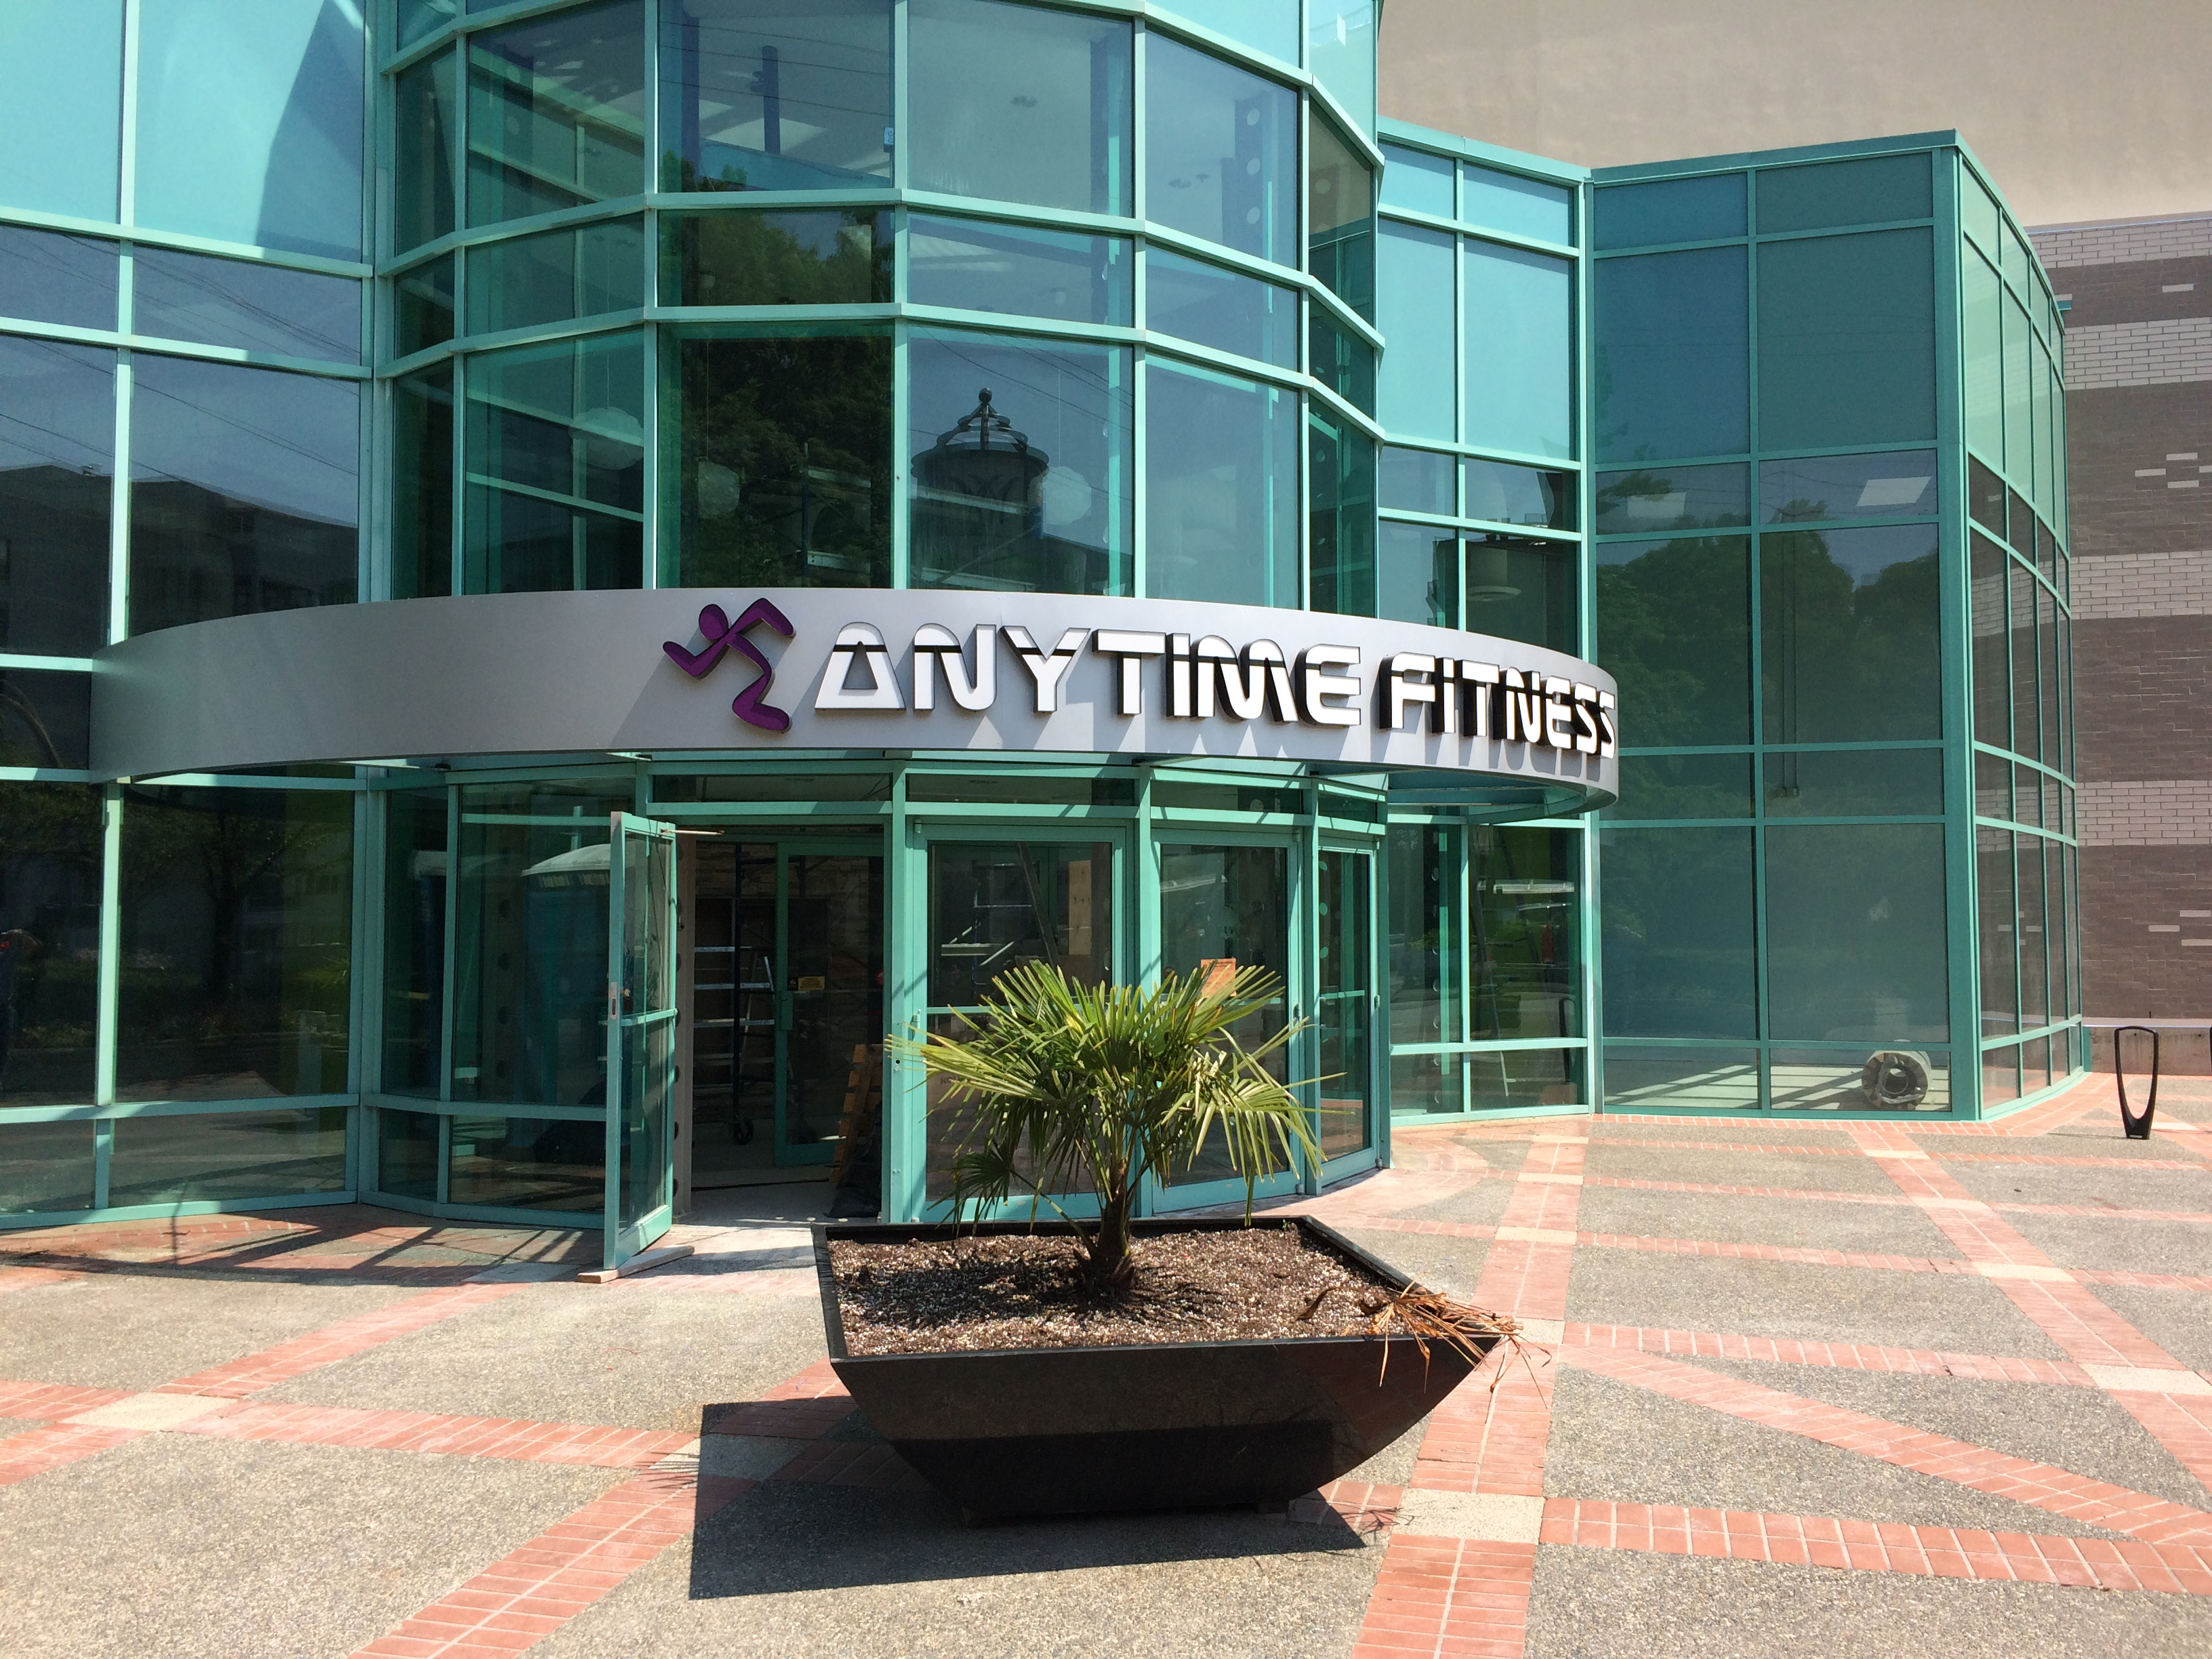 6th street Anytime Fitness